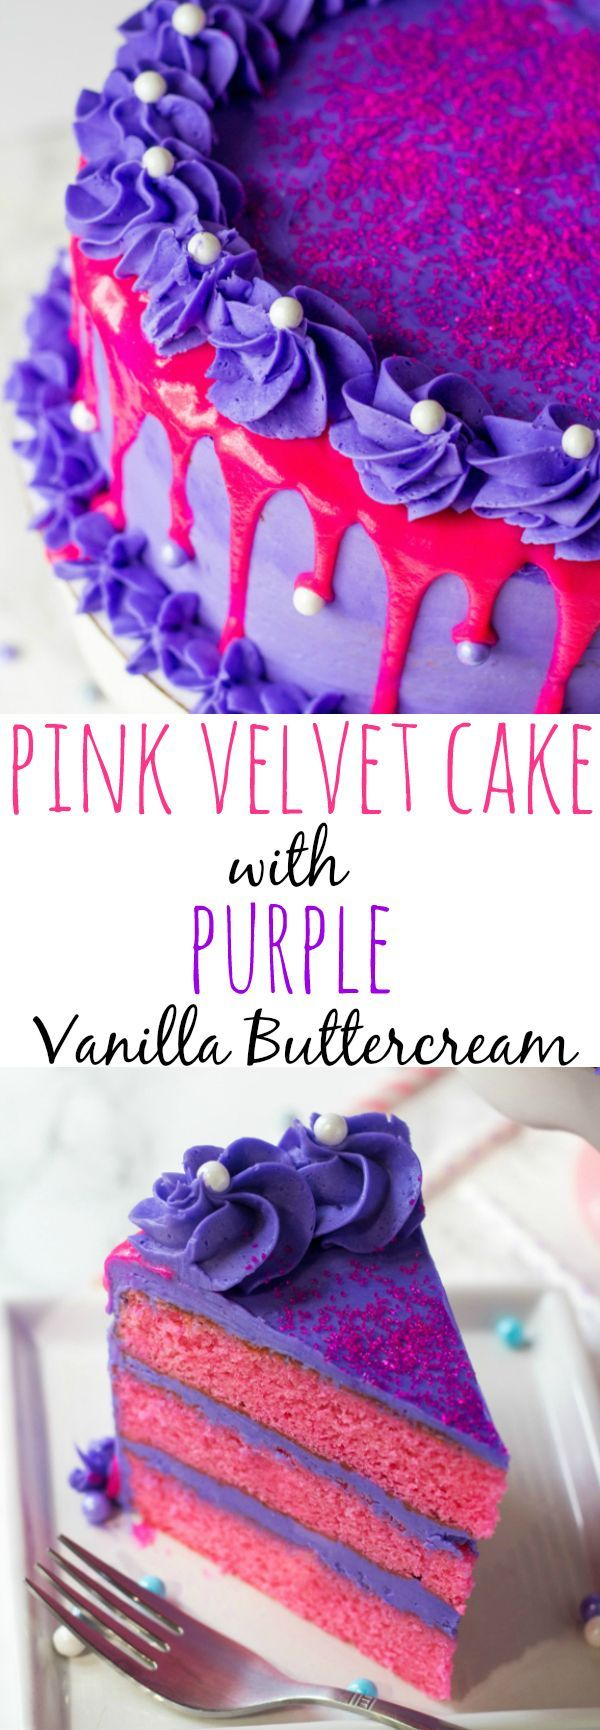 This Pink Velvet Cake with Purple Vanilla Buttercream is the perfect cake for a birthday celebration where bright colors and fun are the main purpose!